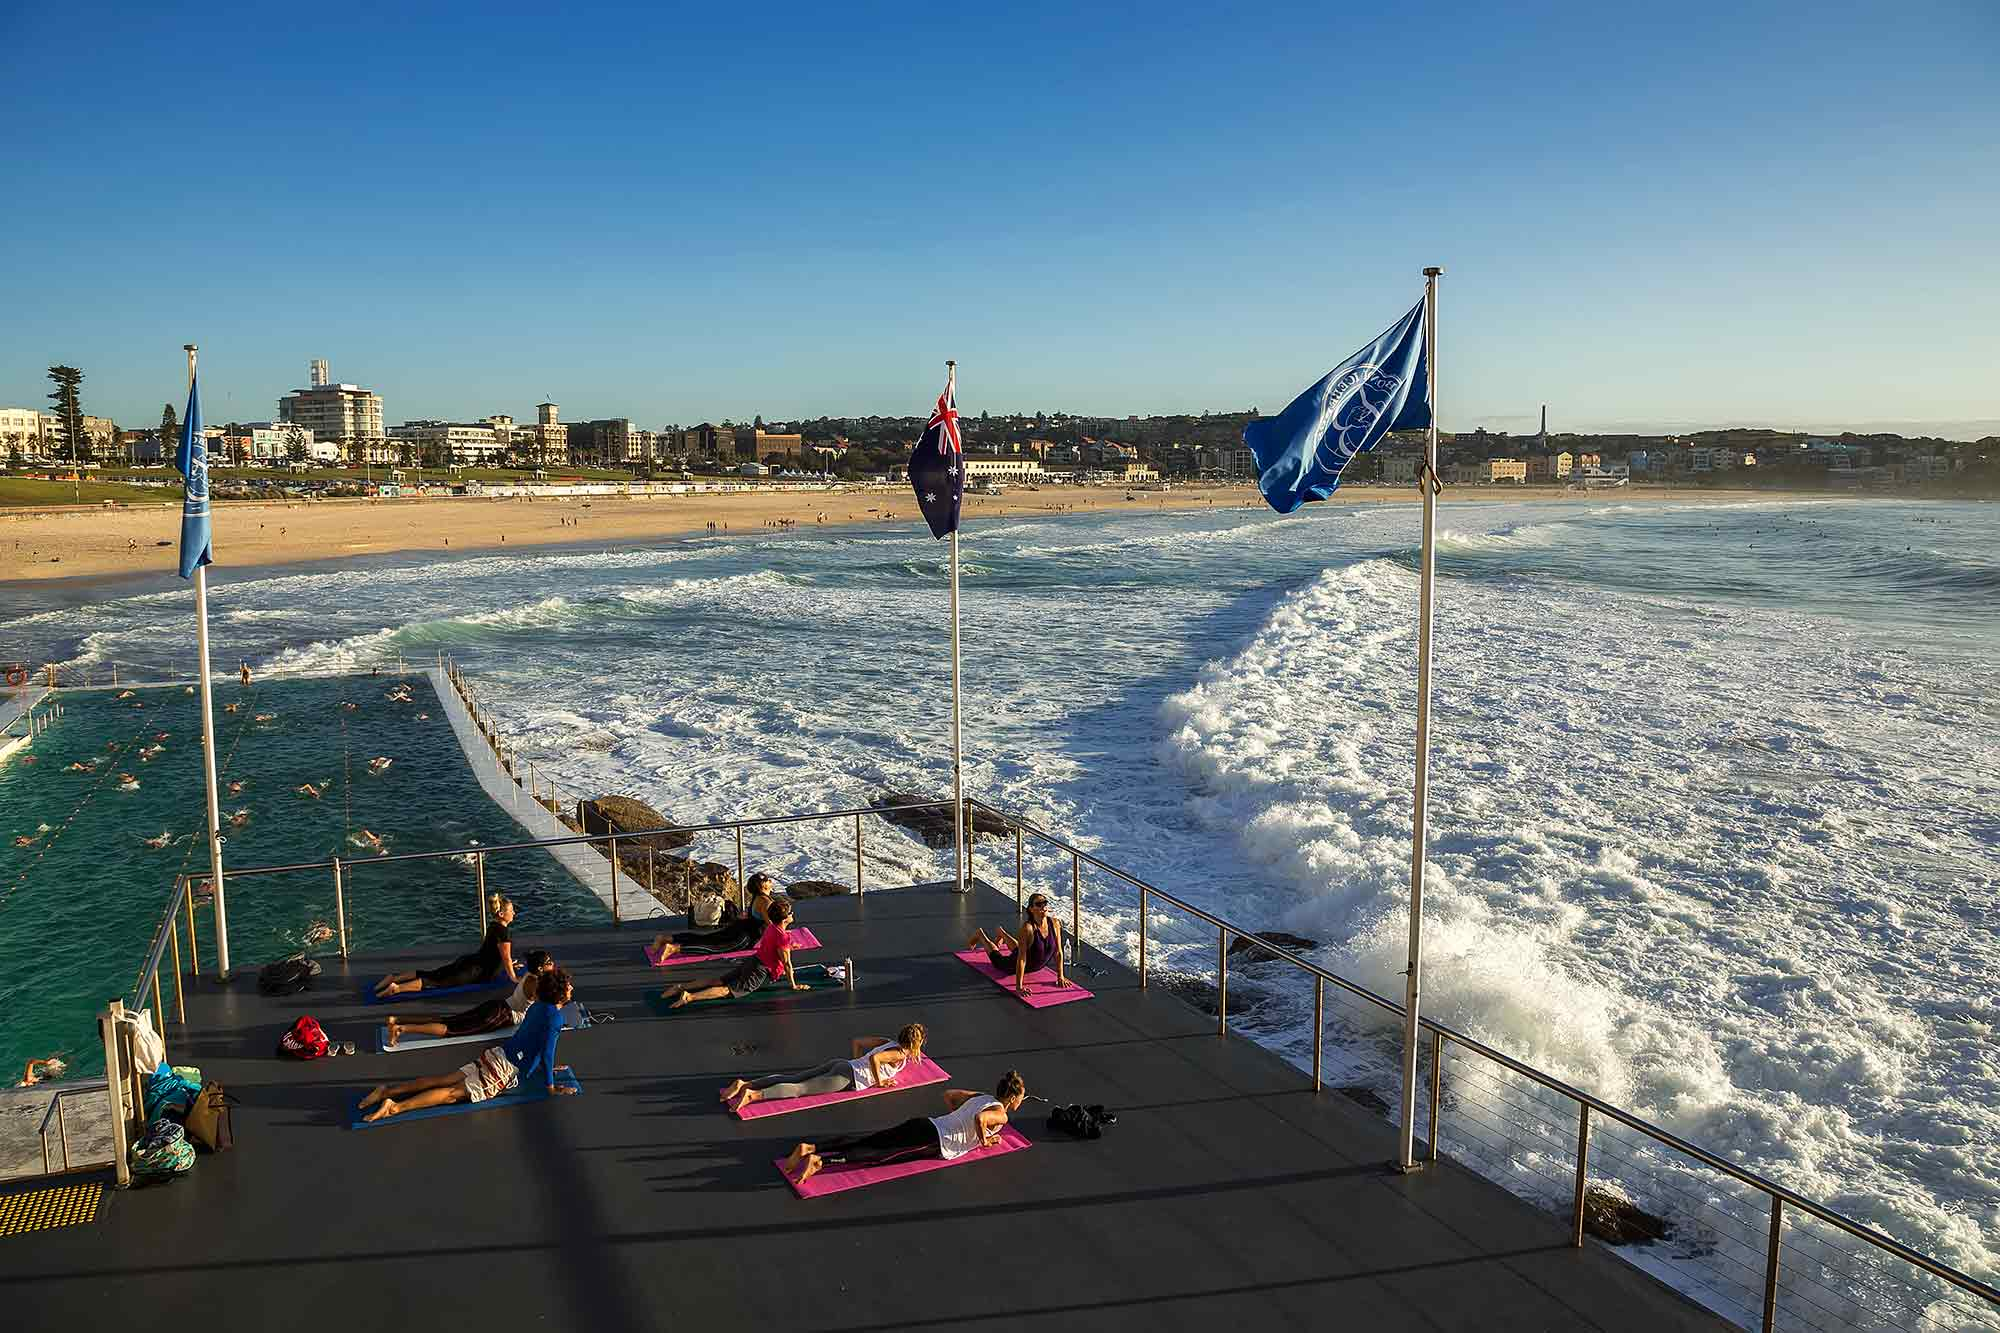 Sydney Coastal Walk: Doing some Yoga near Bondi beach. © Ulli Maier & Nisa Maier